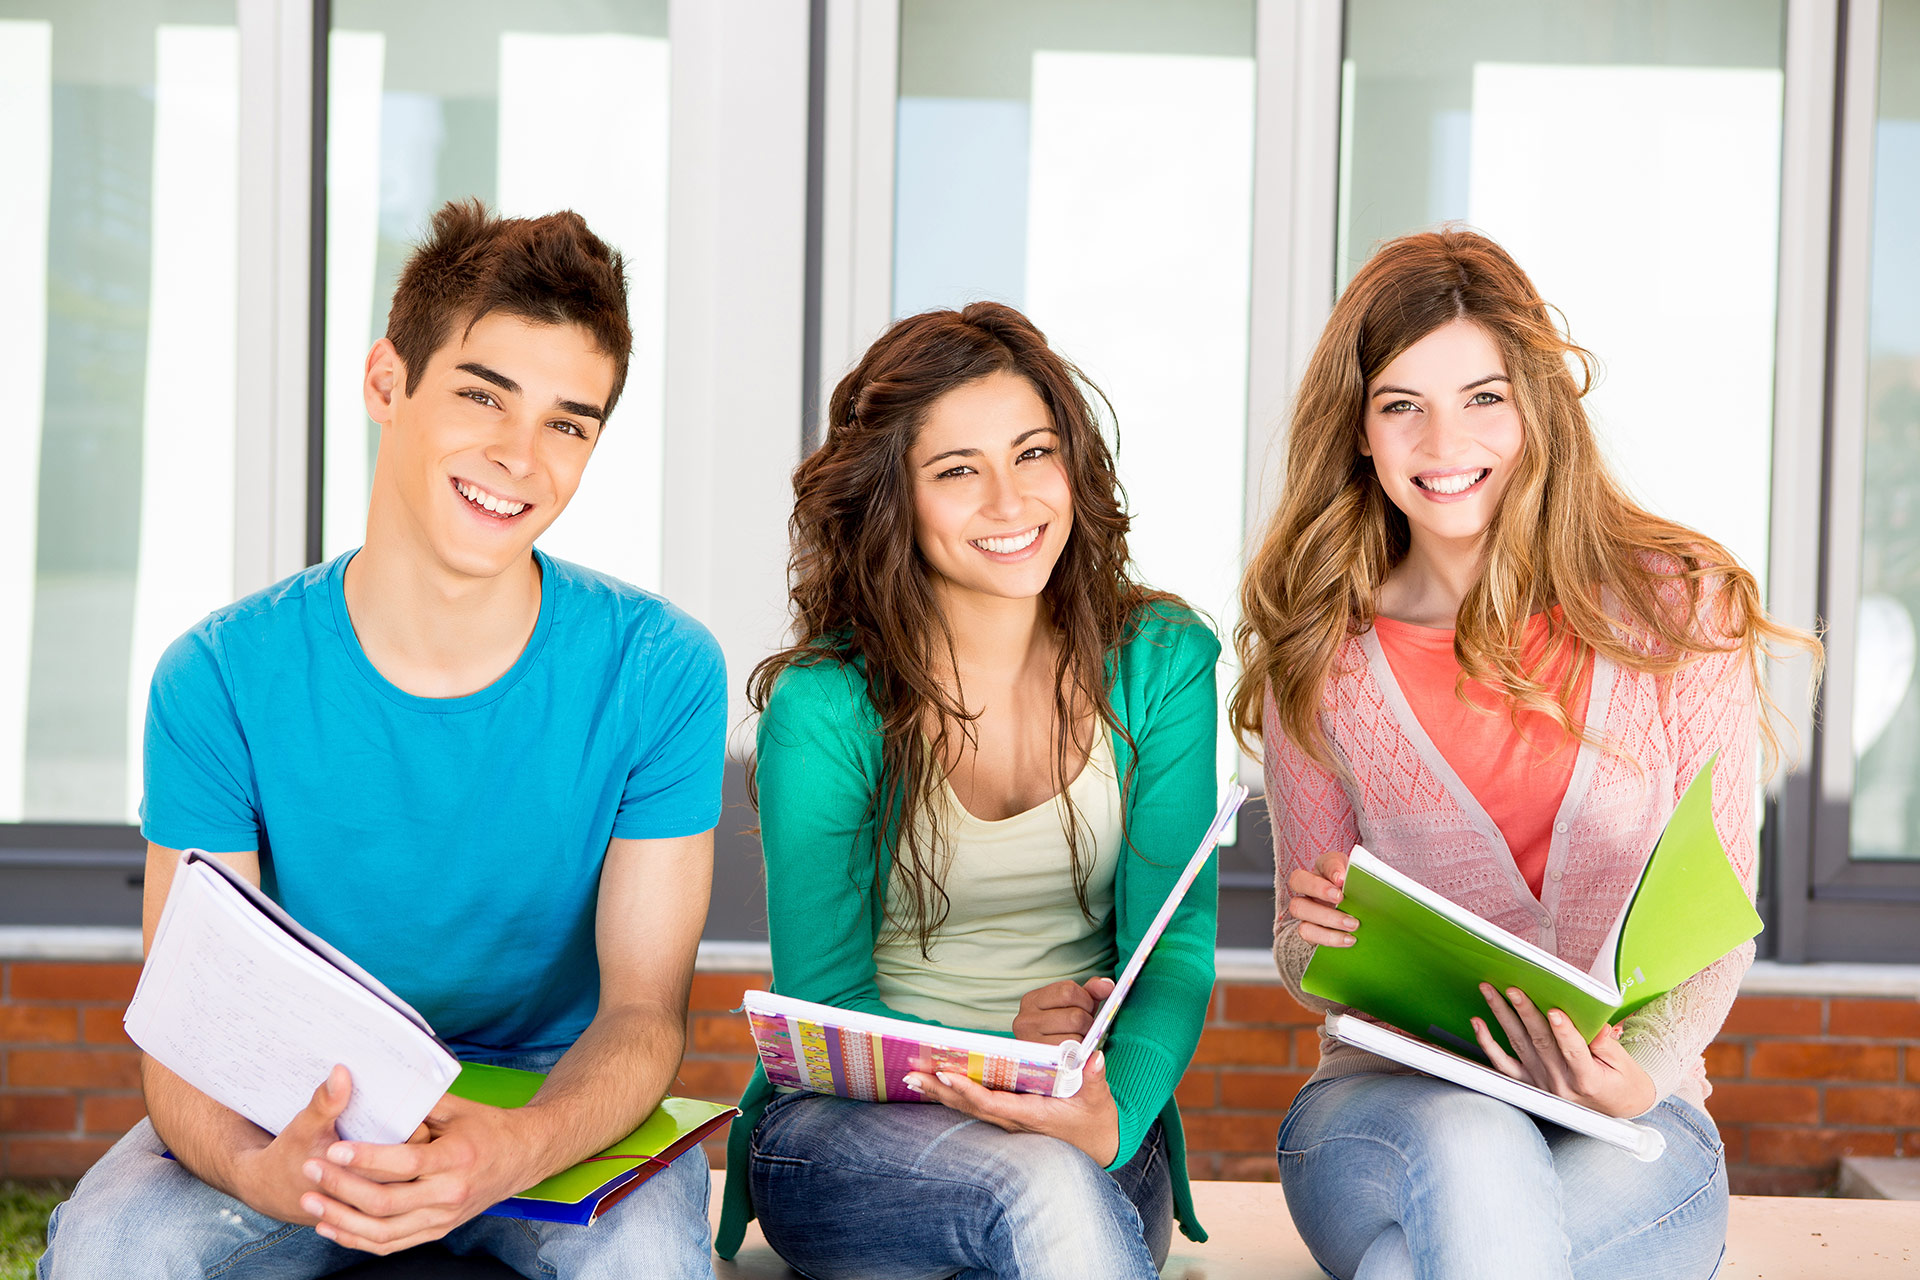 a comparison of the life in a college and high school life The differences and similarities of college and high school the transition from high school to college, while pleasurable and exciting, can also be very challenging, for the simple fact that college is a lot different than high school this change is a huge step that a student will either adjust.